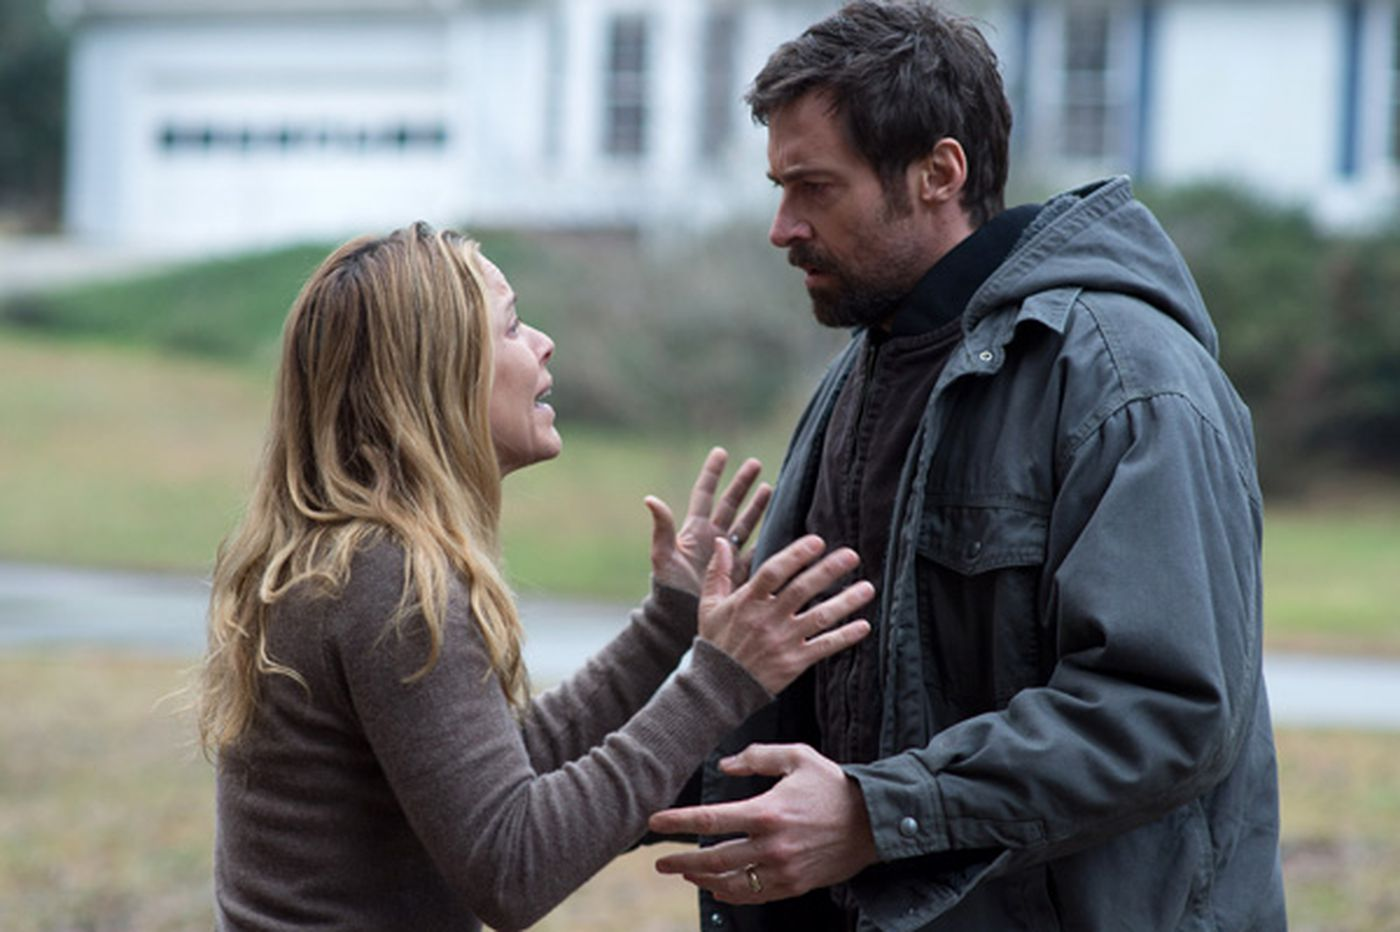 'Prisoners' will tear you up